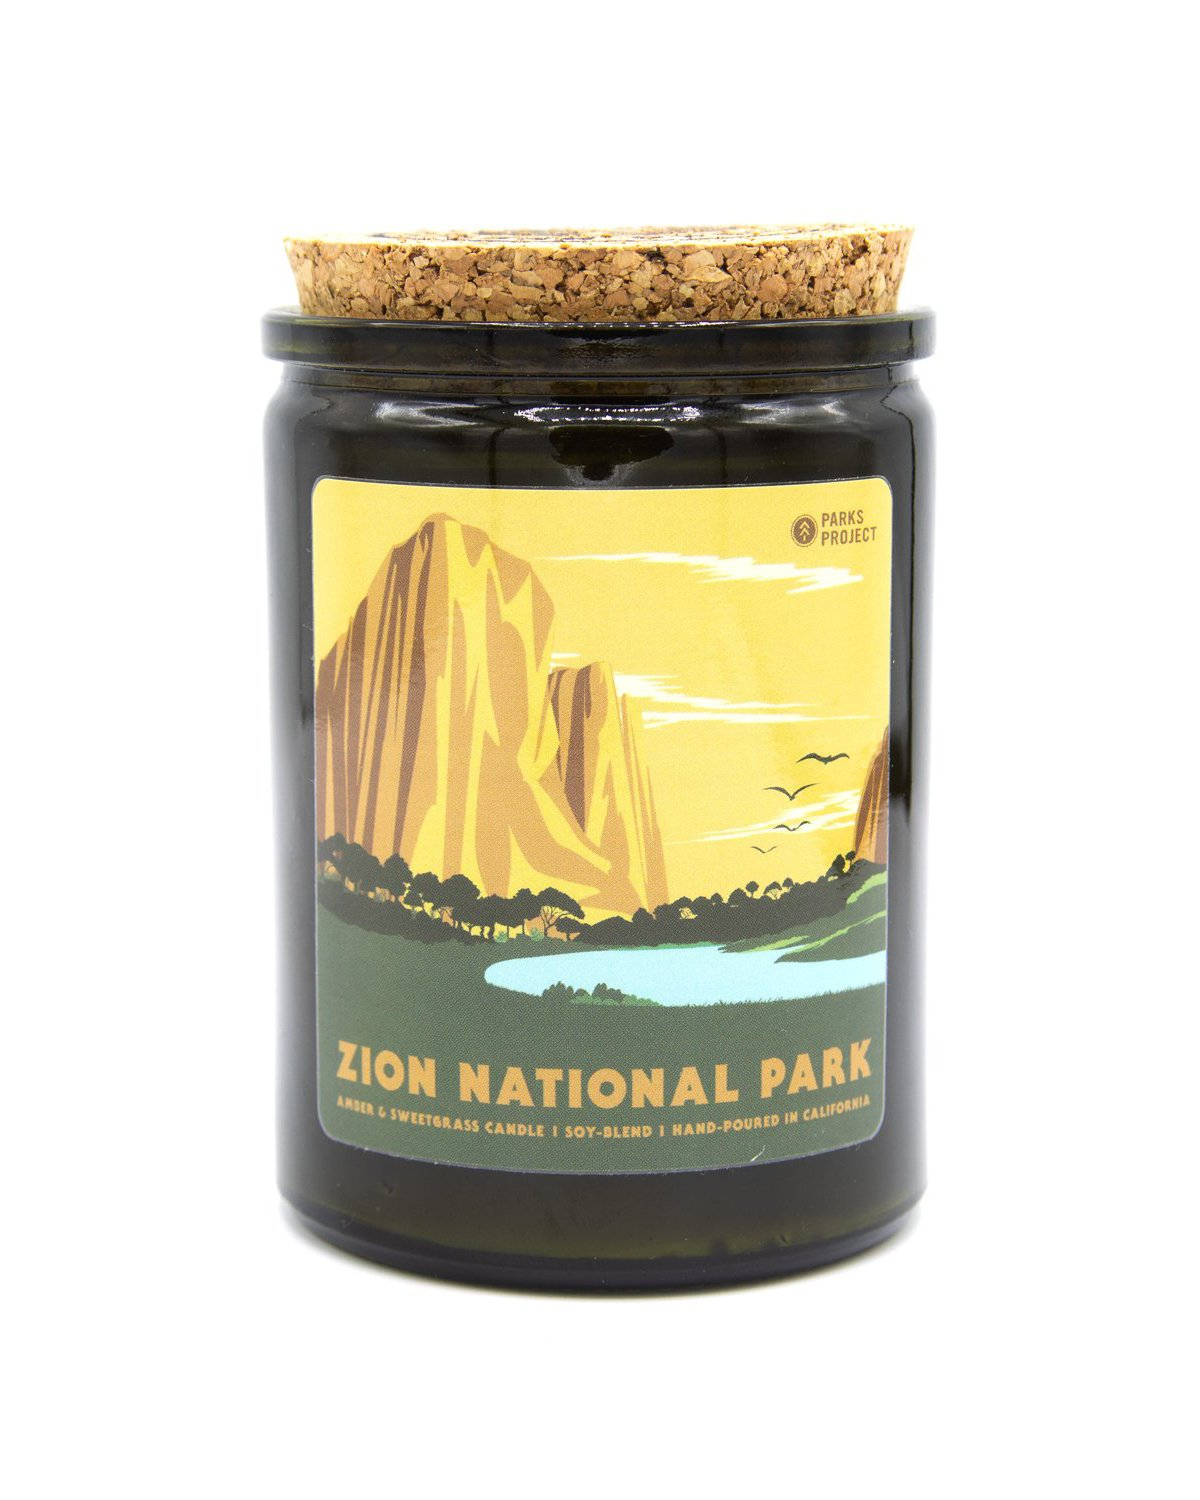 Zion National Park Sweetgrass & Amber Candle | Parks Project | National Park Gift Store